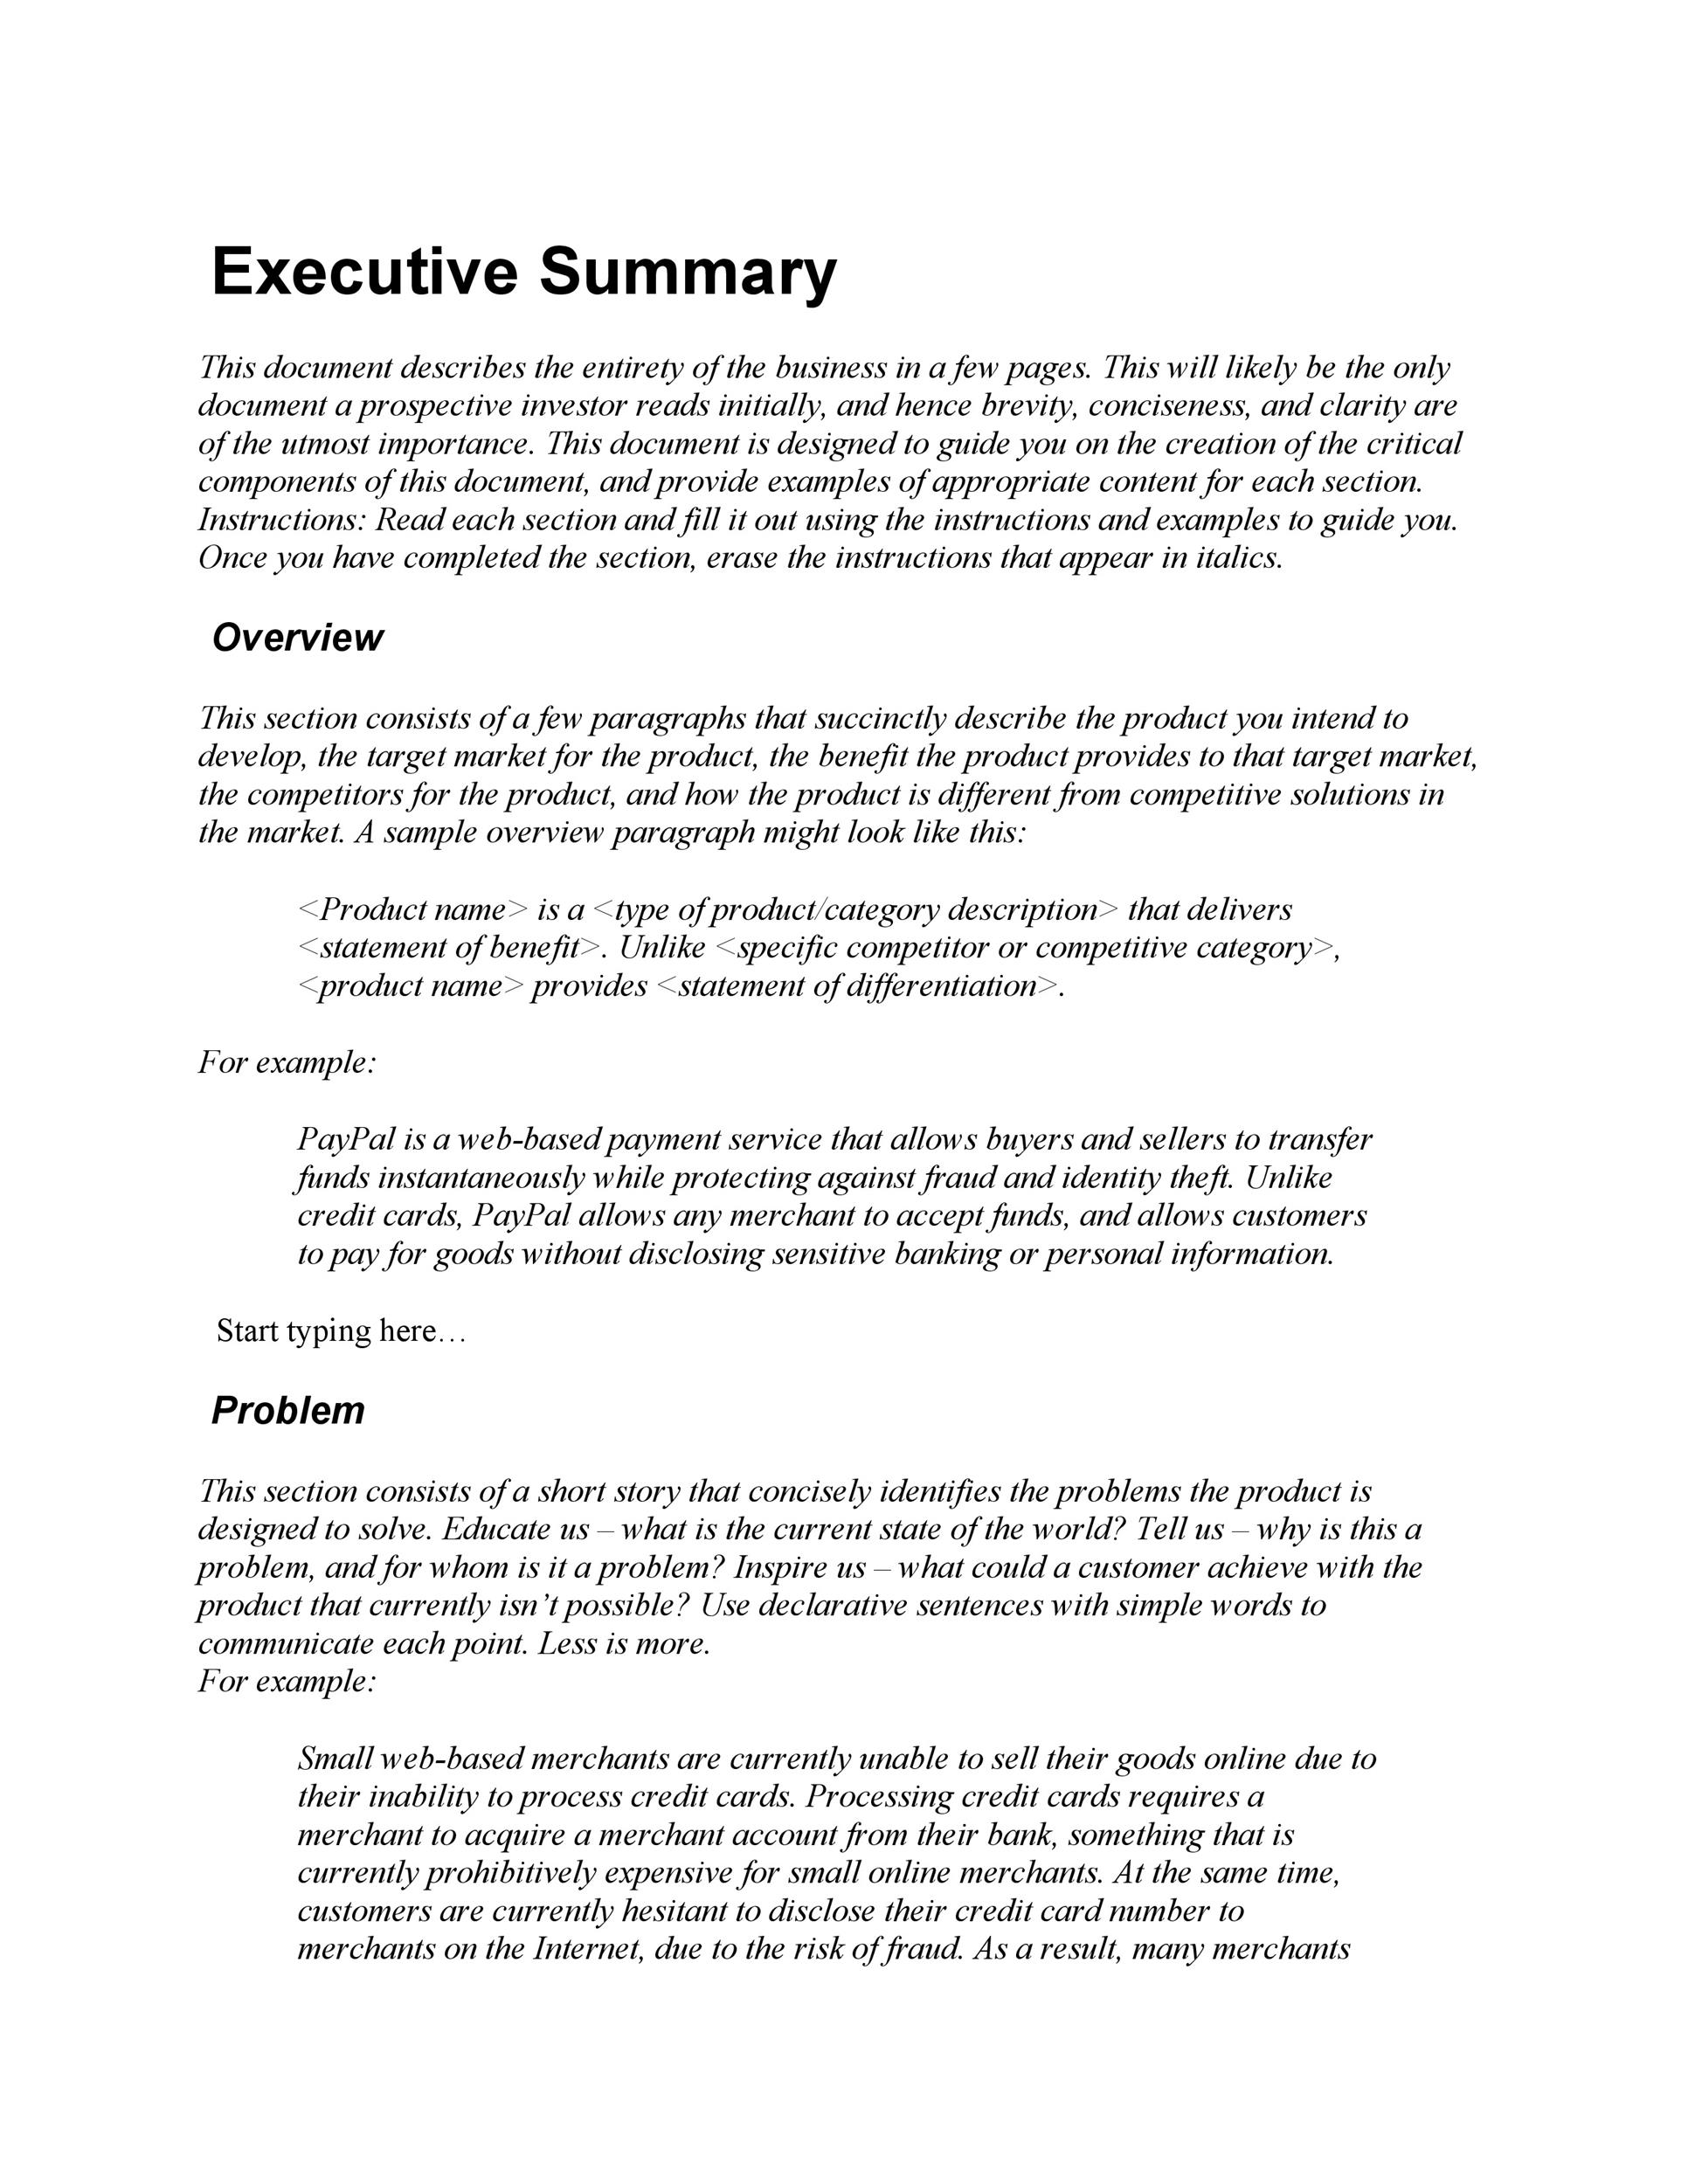 Executive summary business plan sample